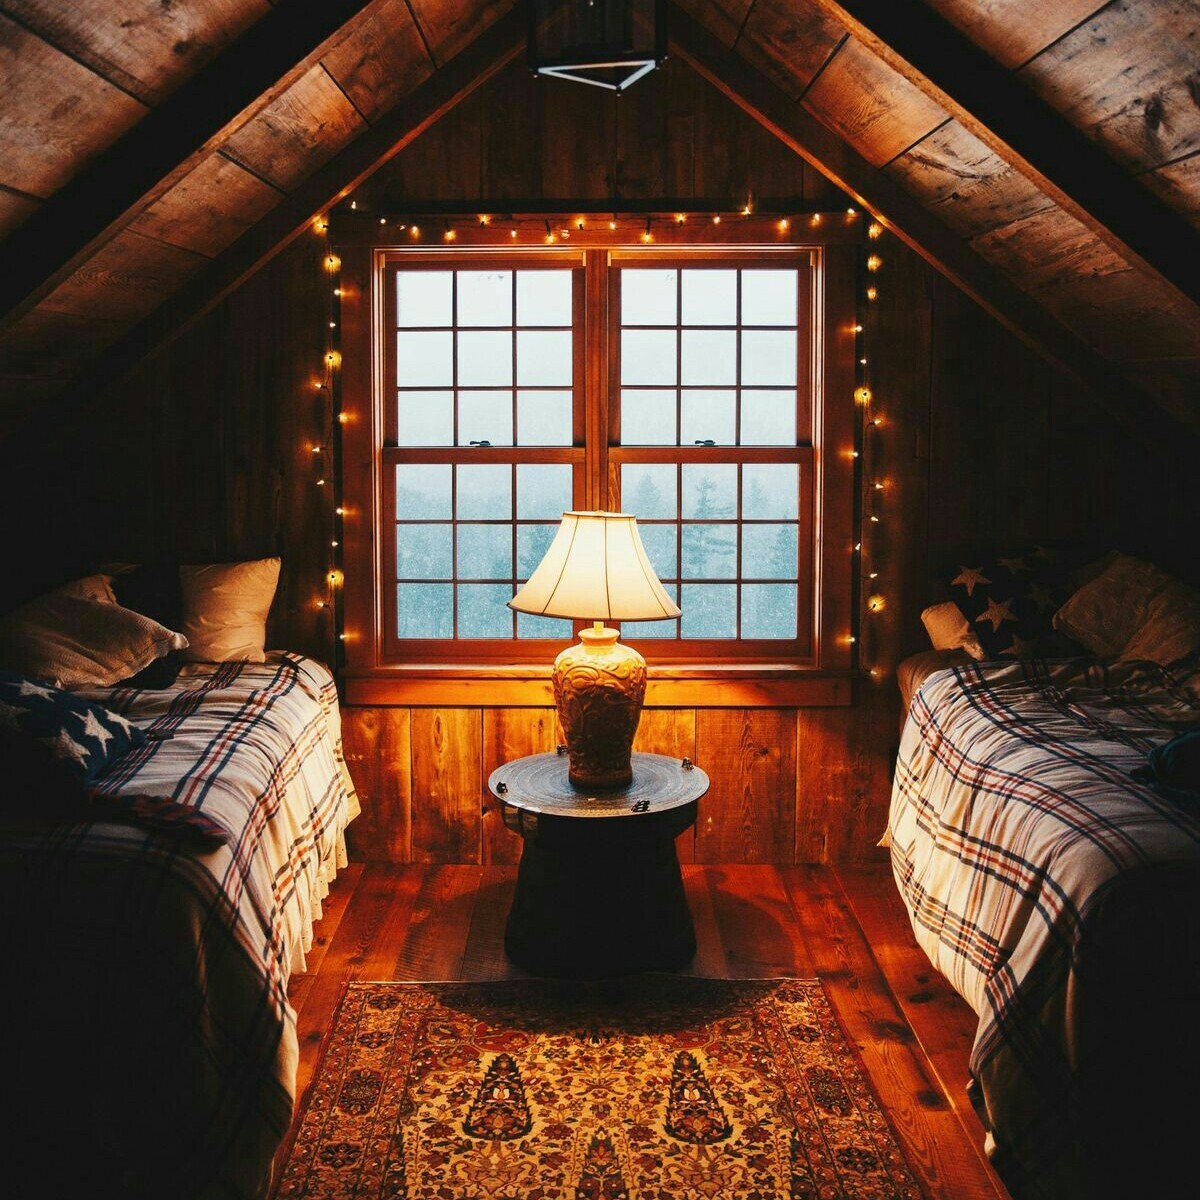 The Best Airbnb Cities For Home Decor Ideas: My Cozy Tree House